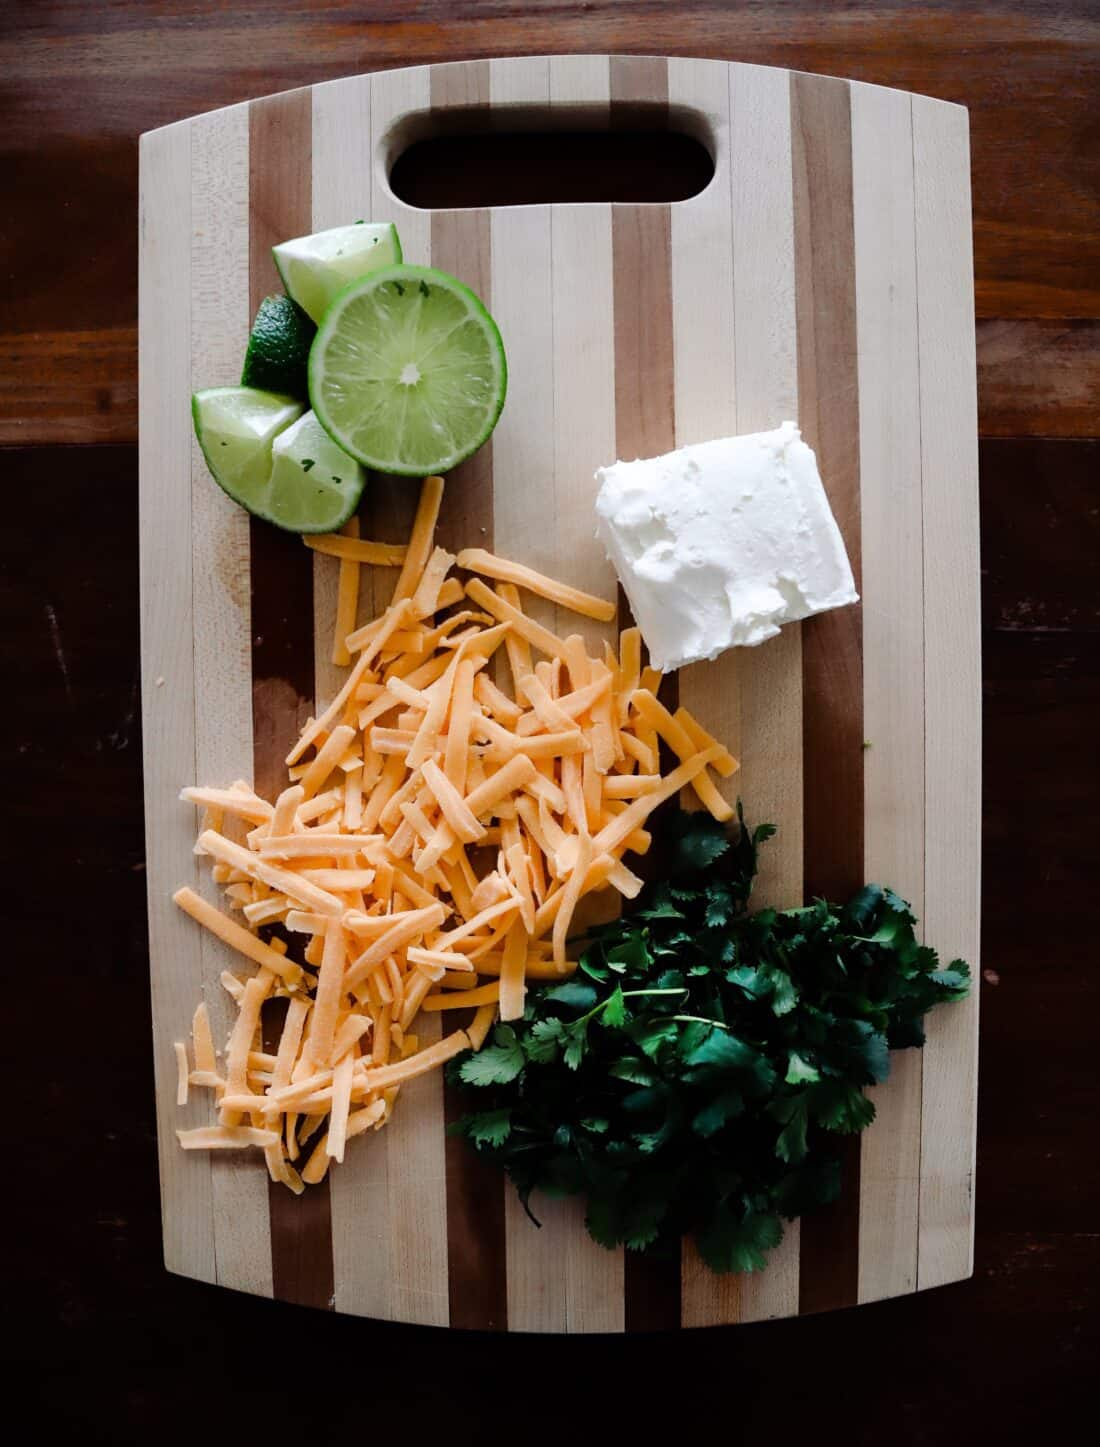 lime, cilantro, cream cheese, and shredded cheese on wooden cutting board